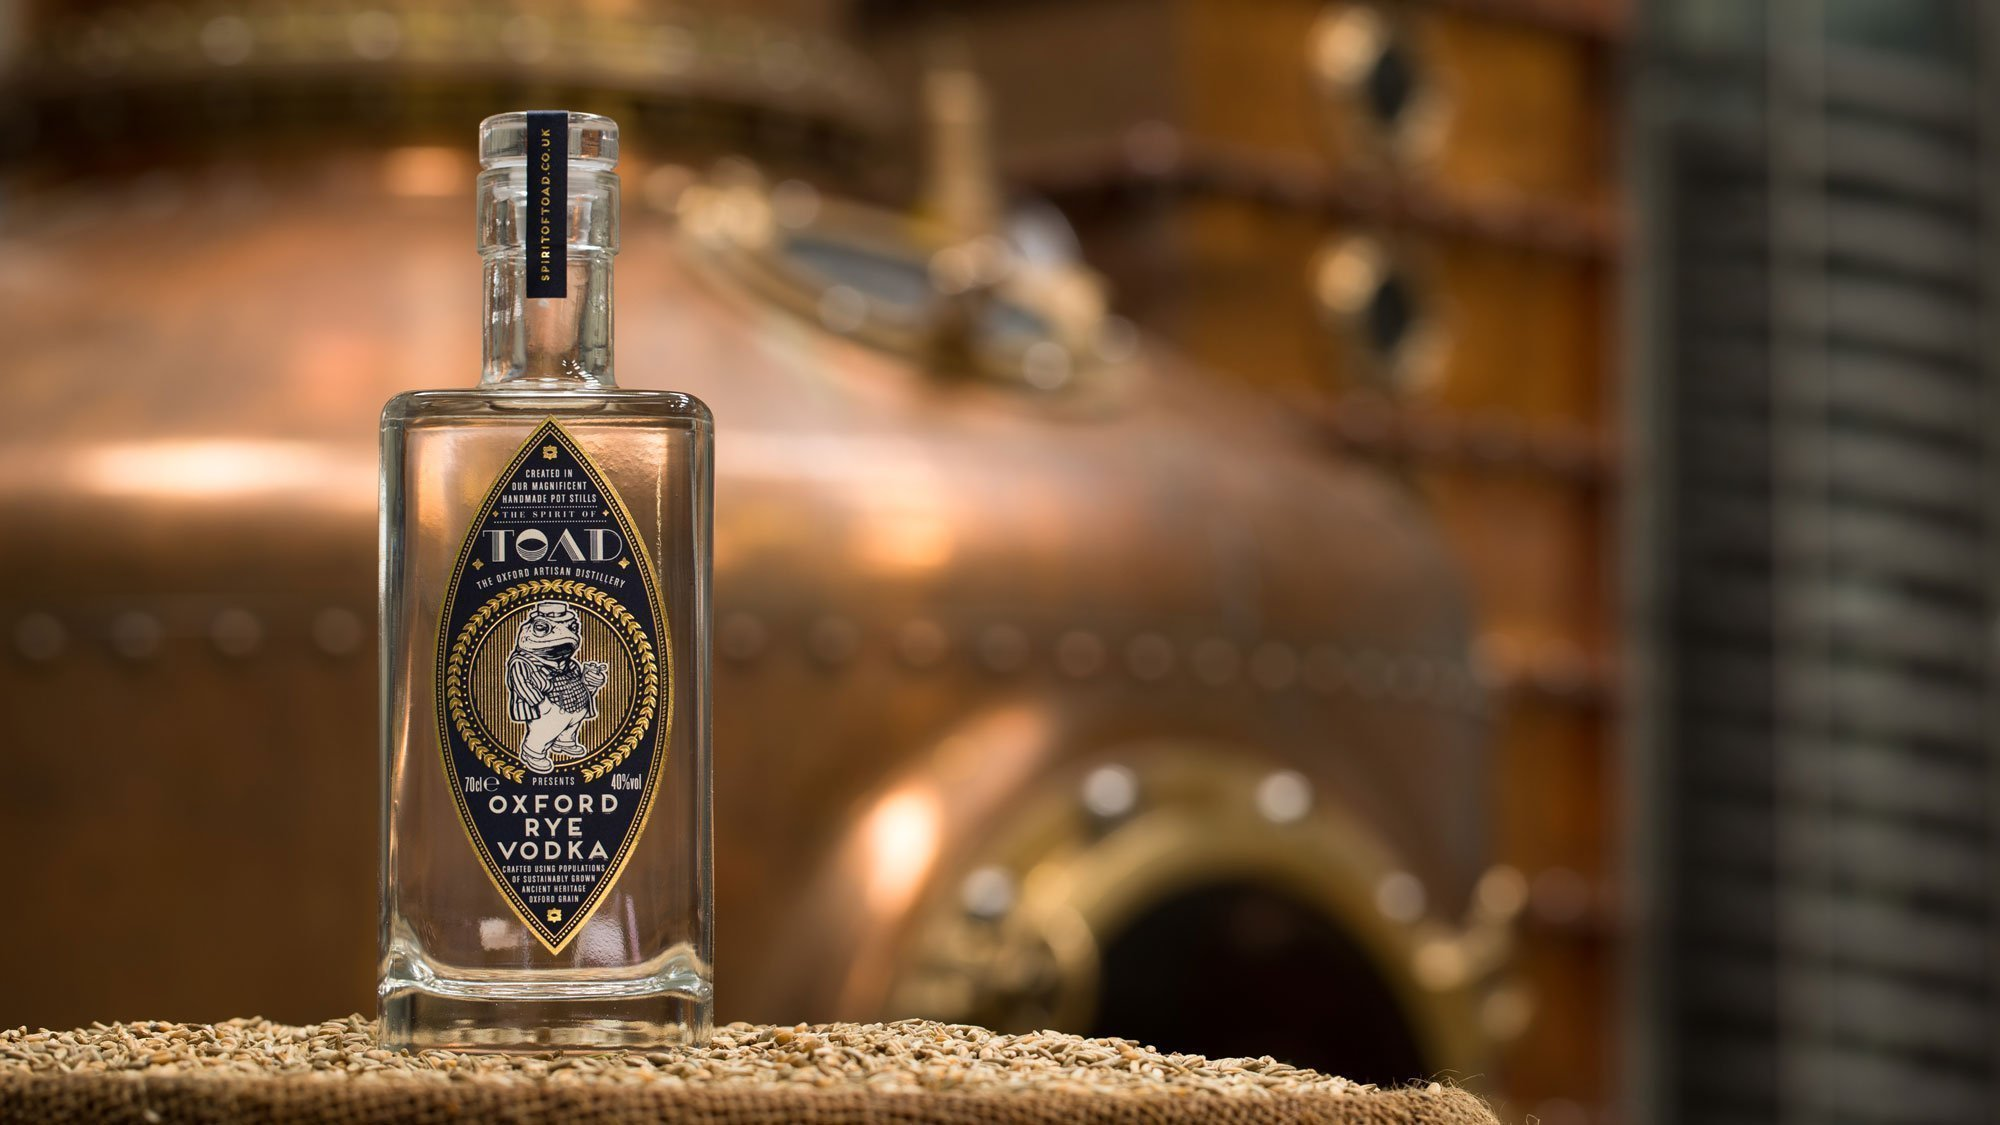 The Oxford Artisan Distillery (TOAD) Rye Vodka